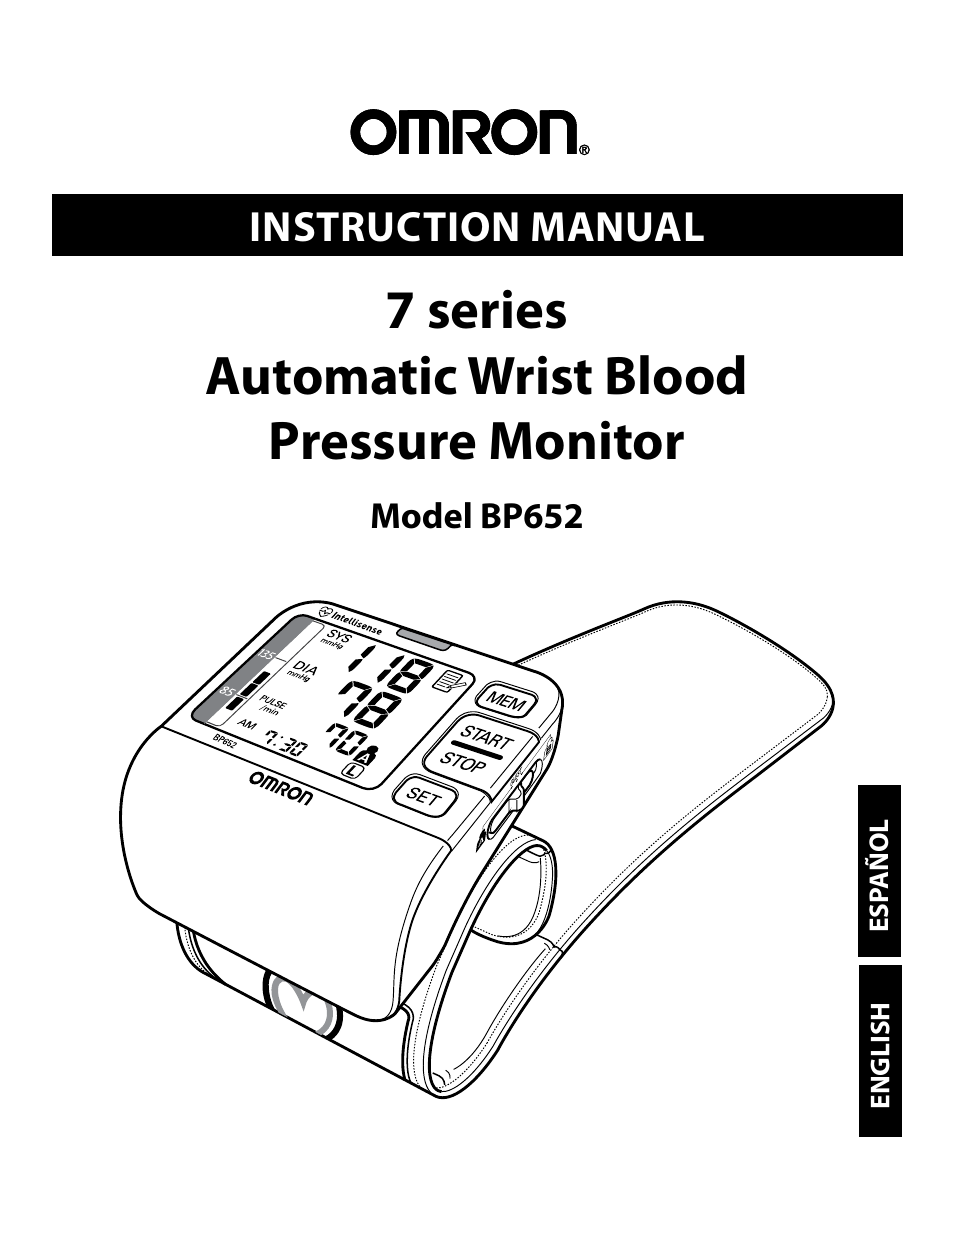 Heart Sounds And Blood Pressure Manual Guide